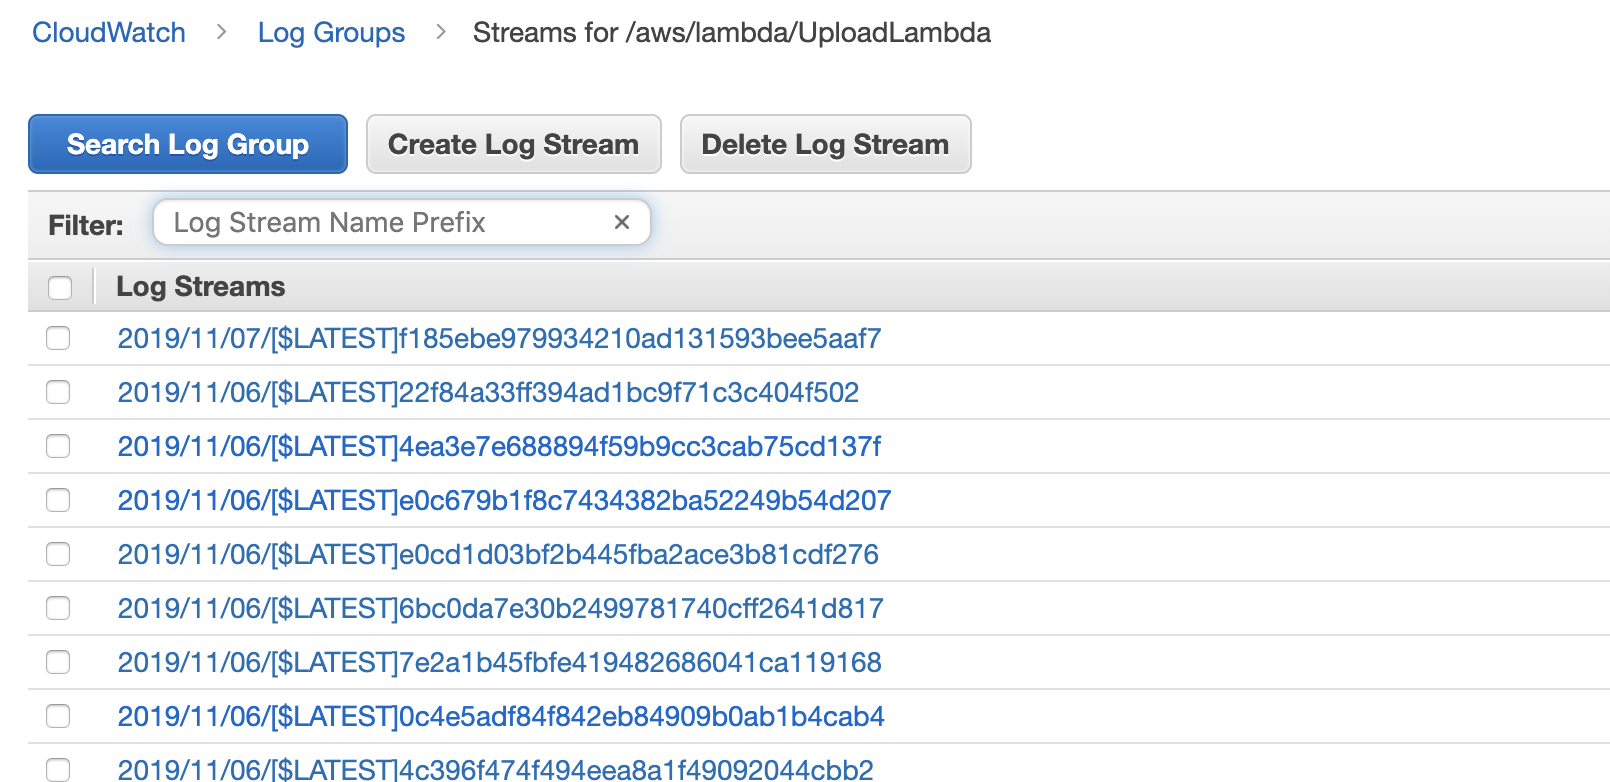 Lambda Log Streams